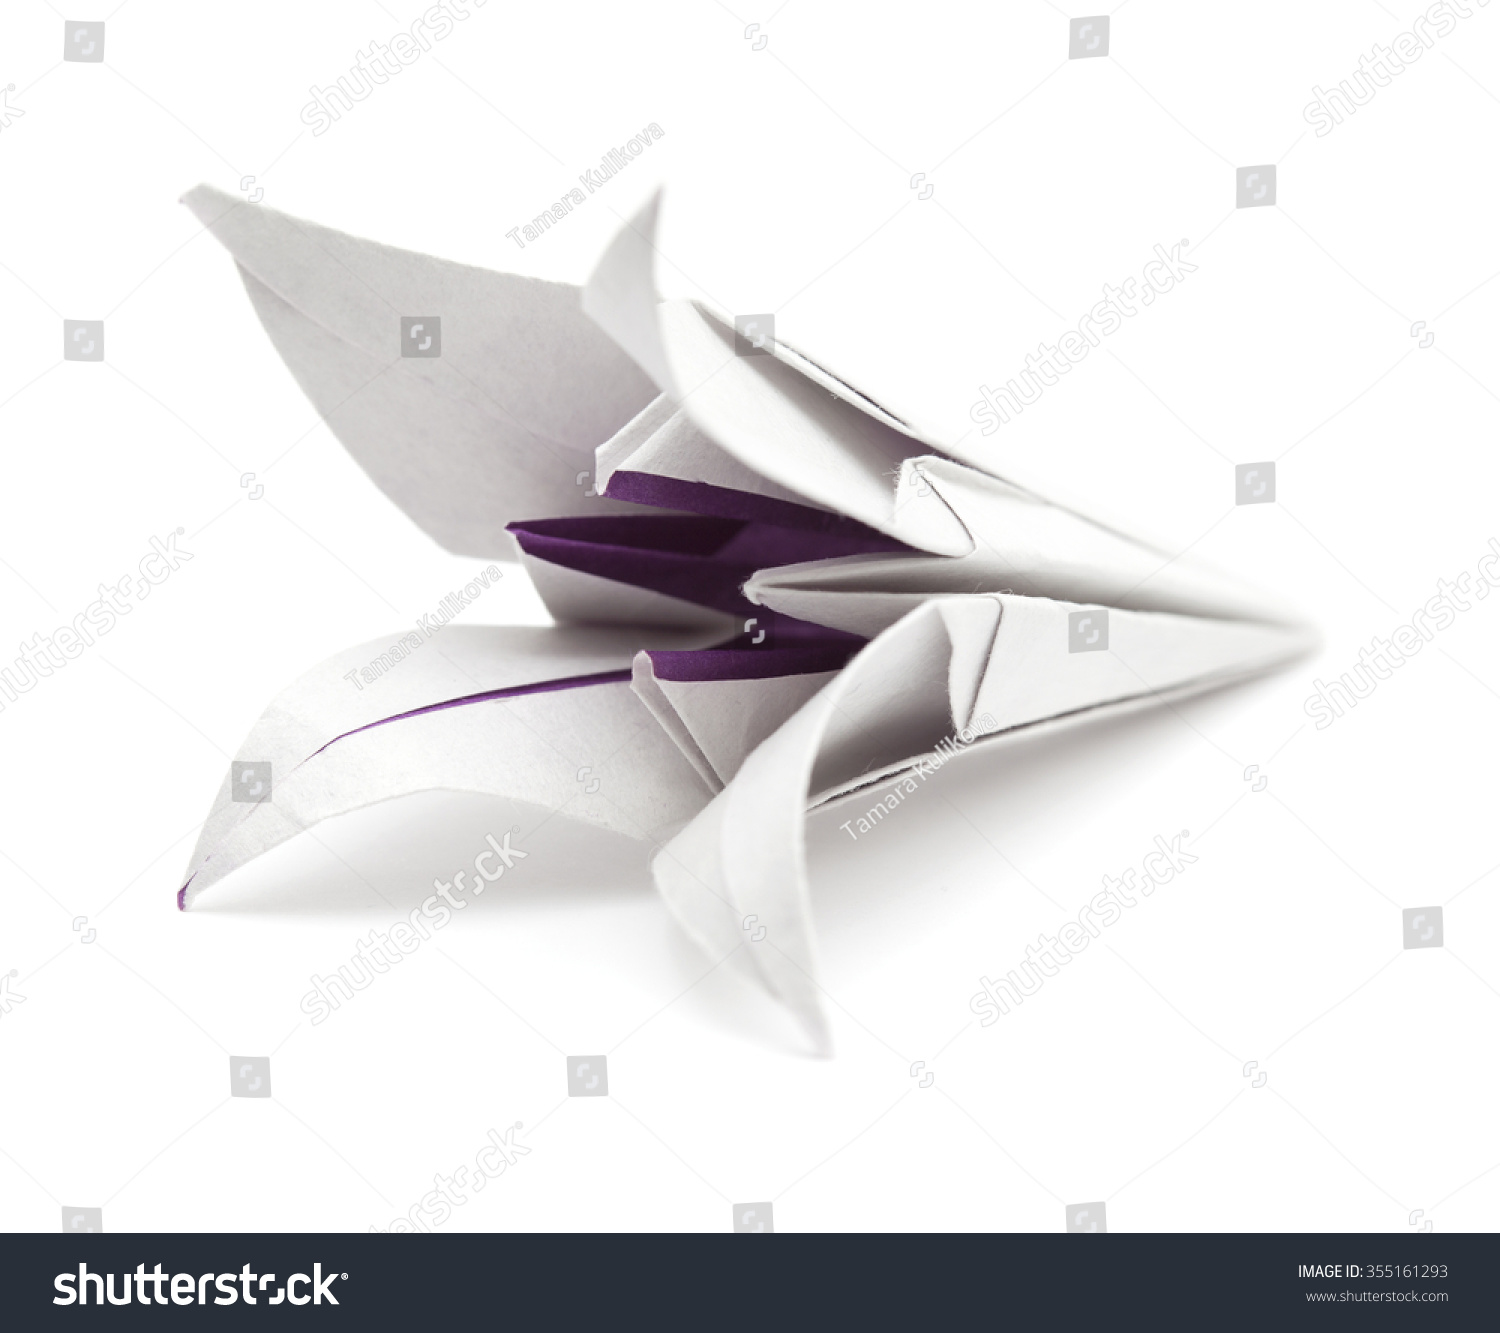 How to Make an Origami Lily Flower « Origami :: WonderHowTo | 1333x1500